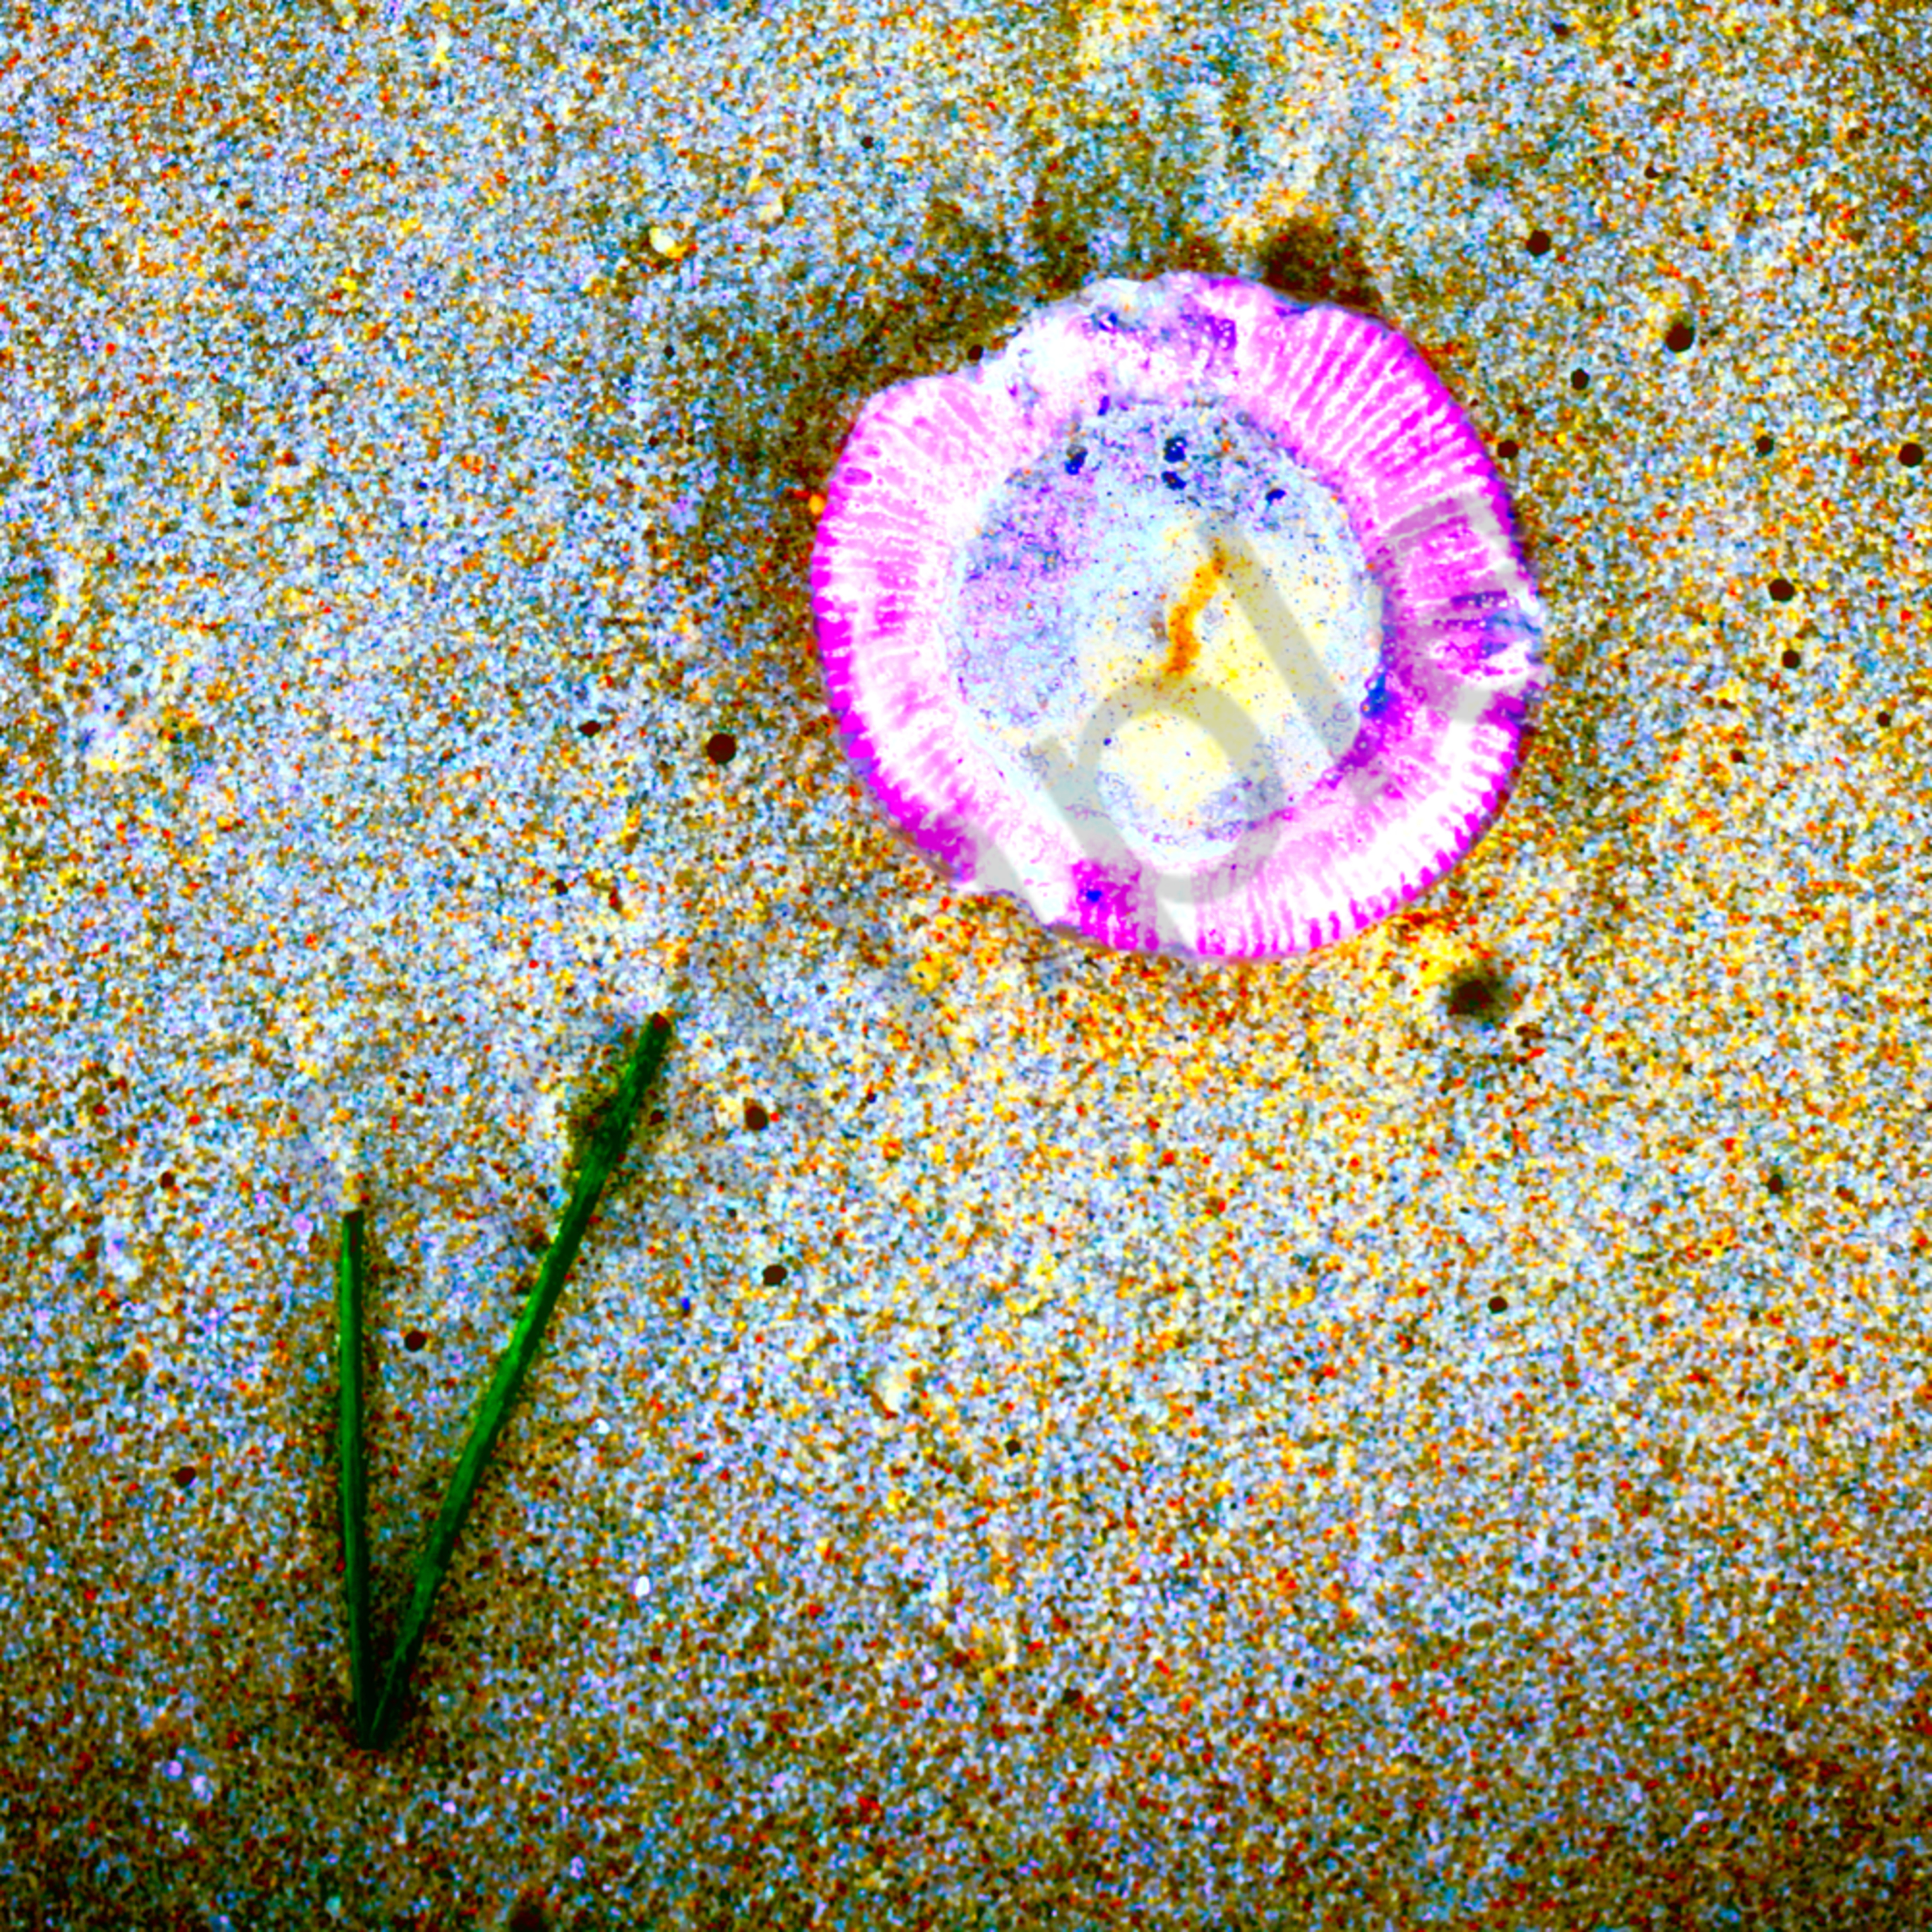 Jellyfish and seaweed website o2l1wy